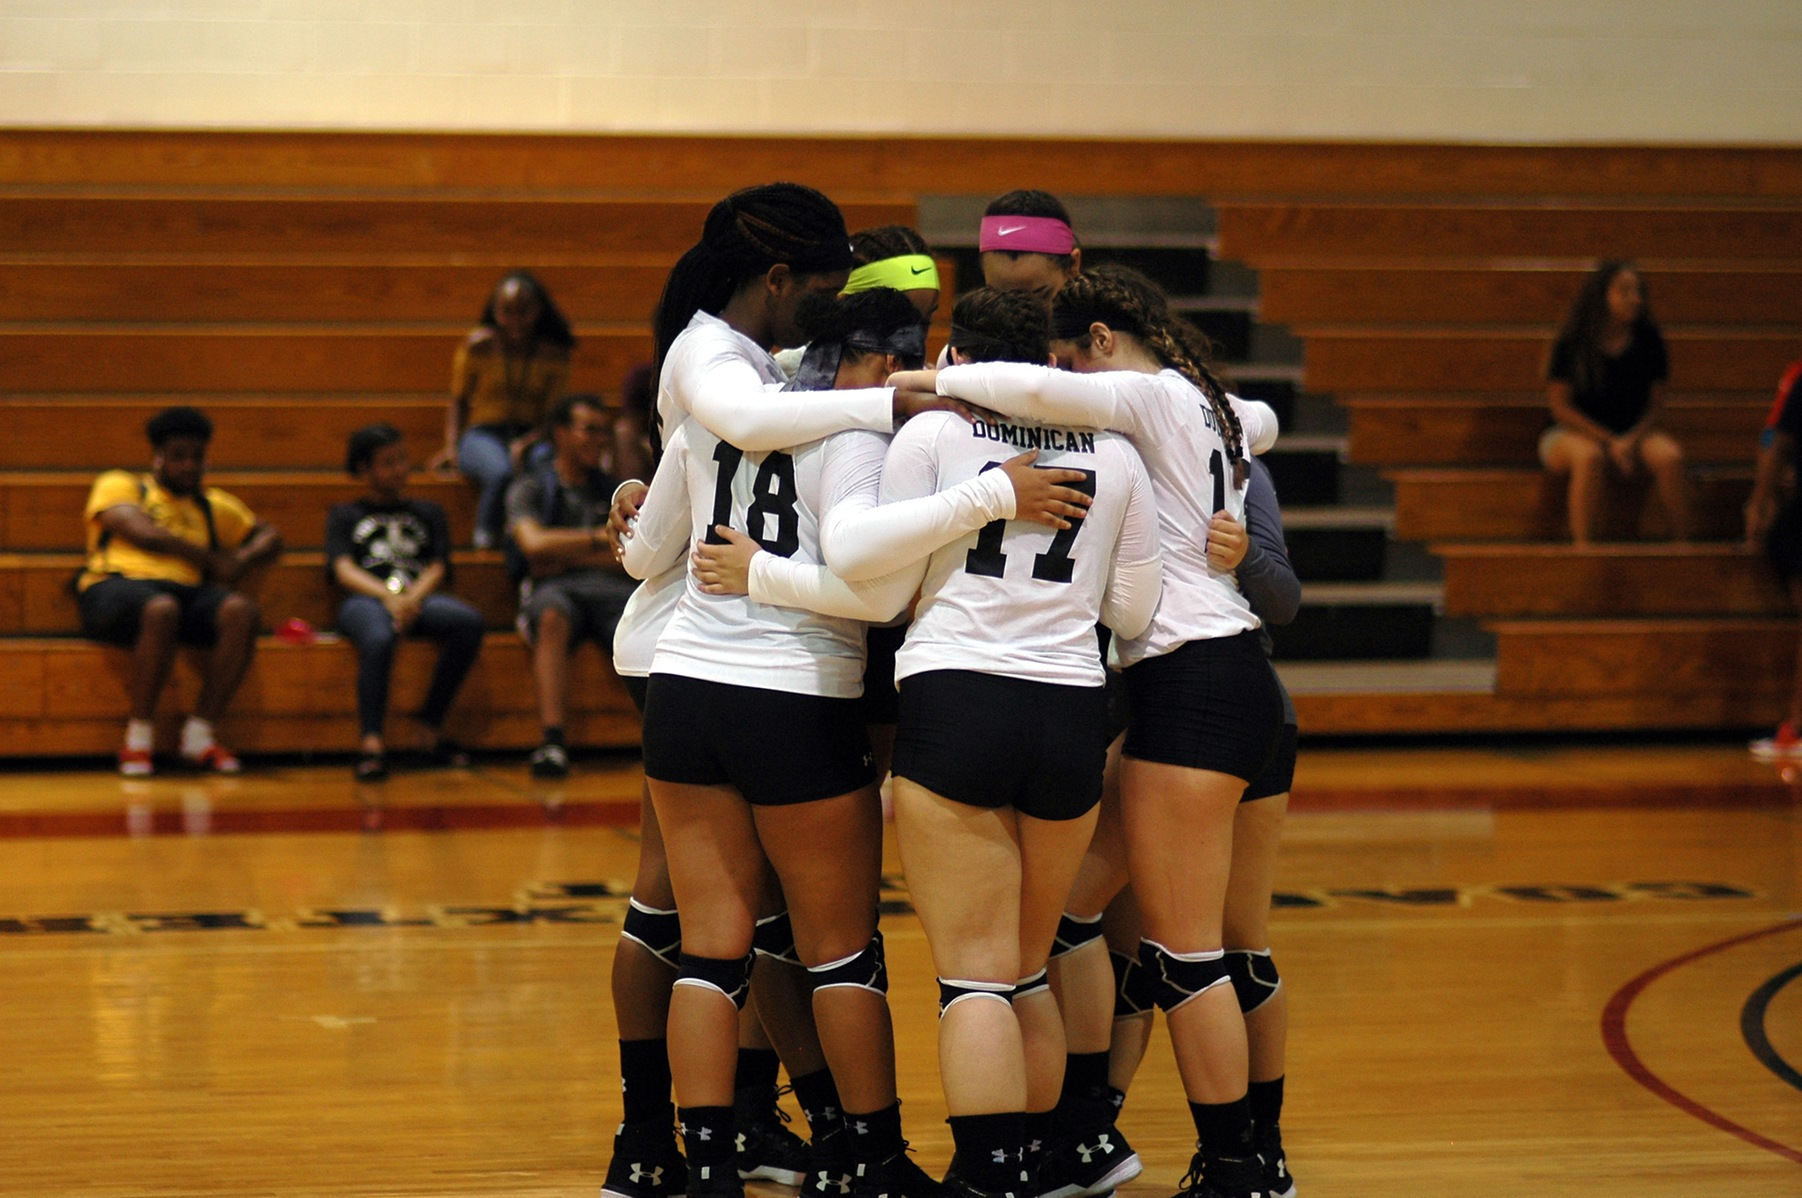 TIGERS SWEEP WOMEN'S VOLLEYBALL